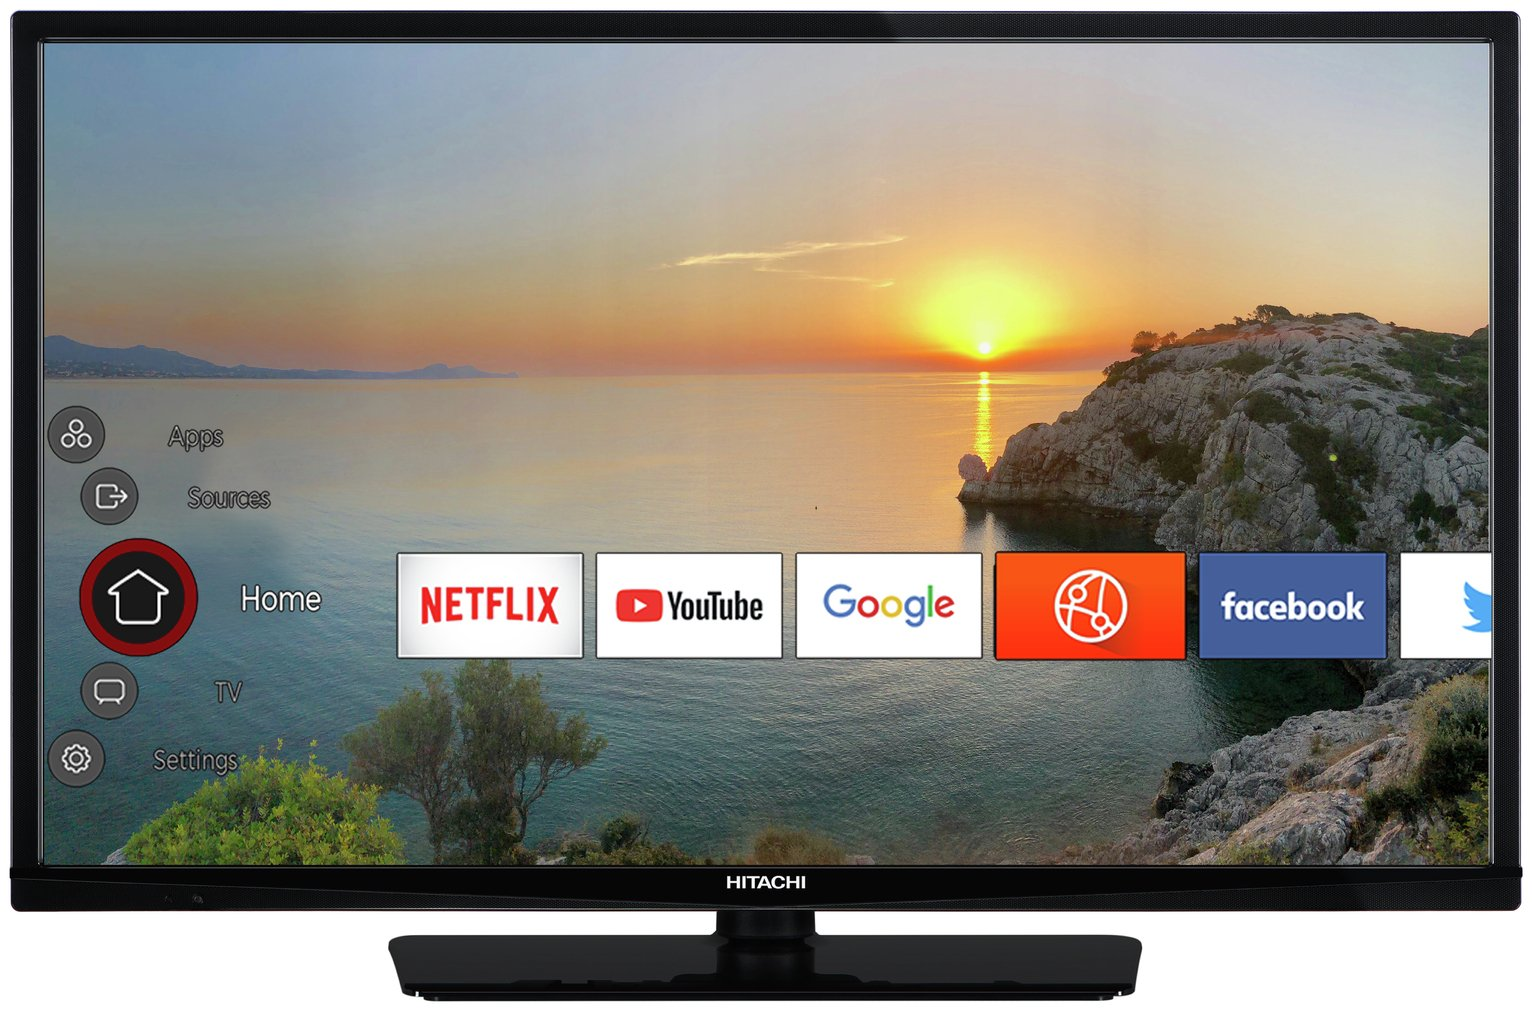 Hitachi 32 Inch Smart HD Ready TV from Hitachi